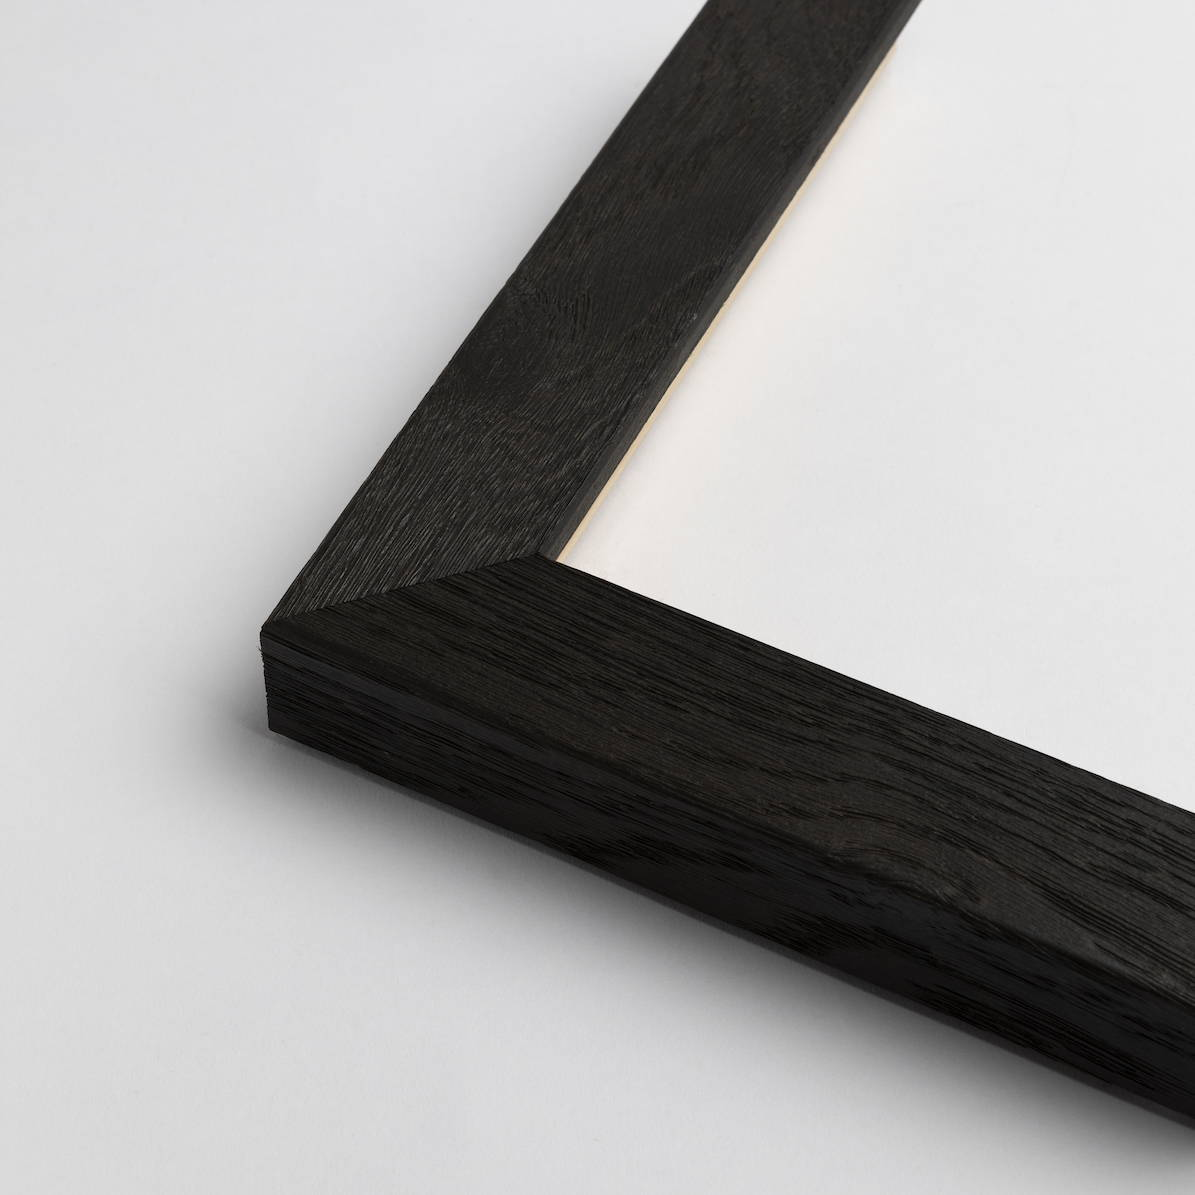 TV-Mirror Modern Timber Grain Black Frame by FRAMING TO A T